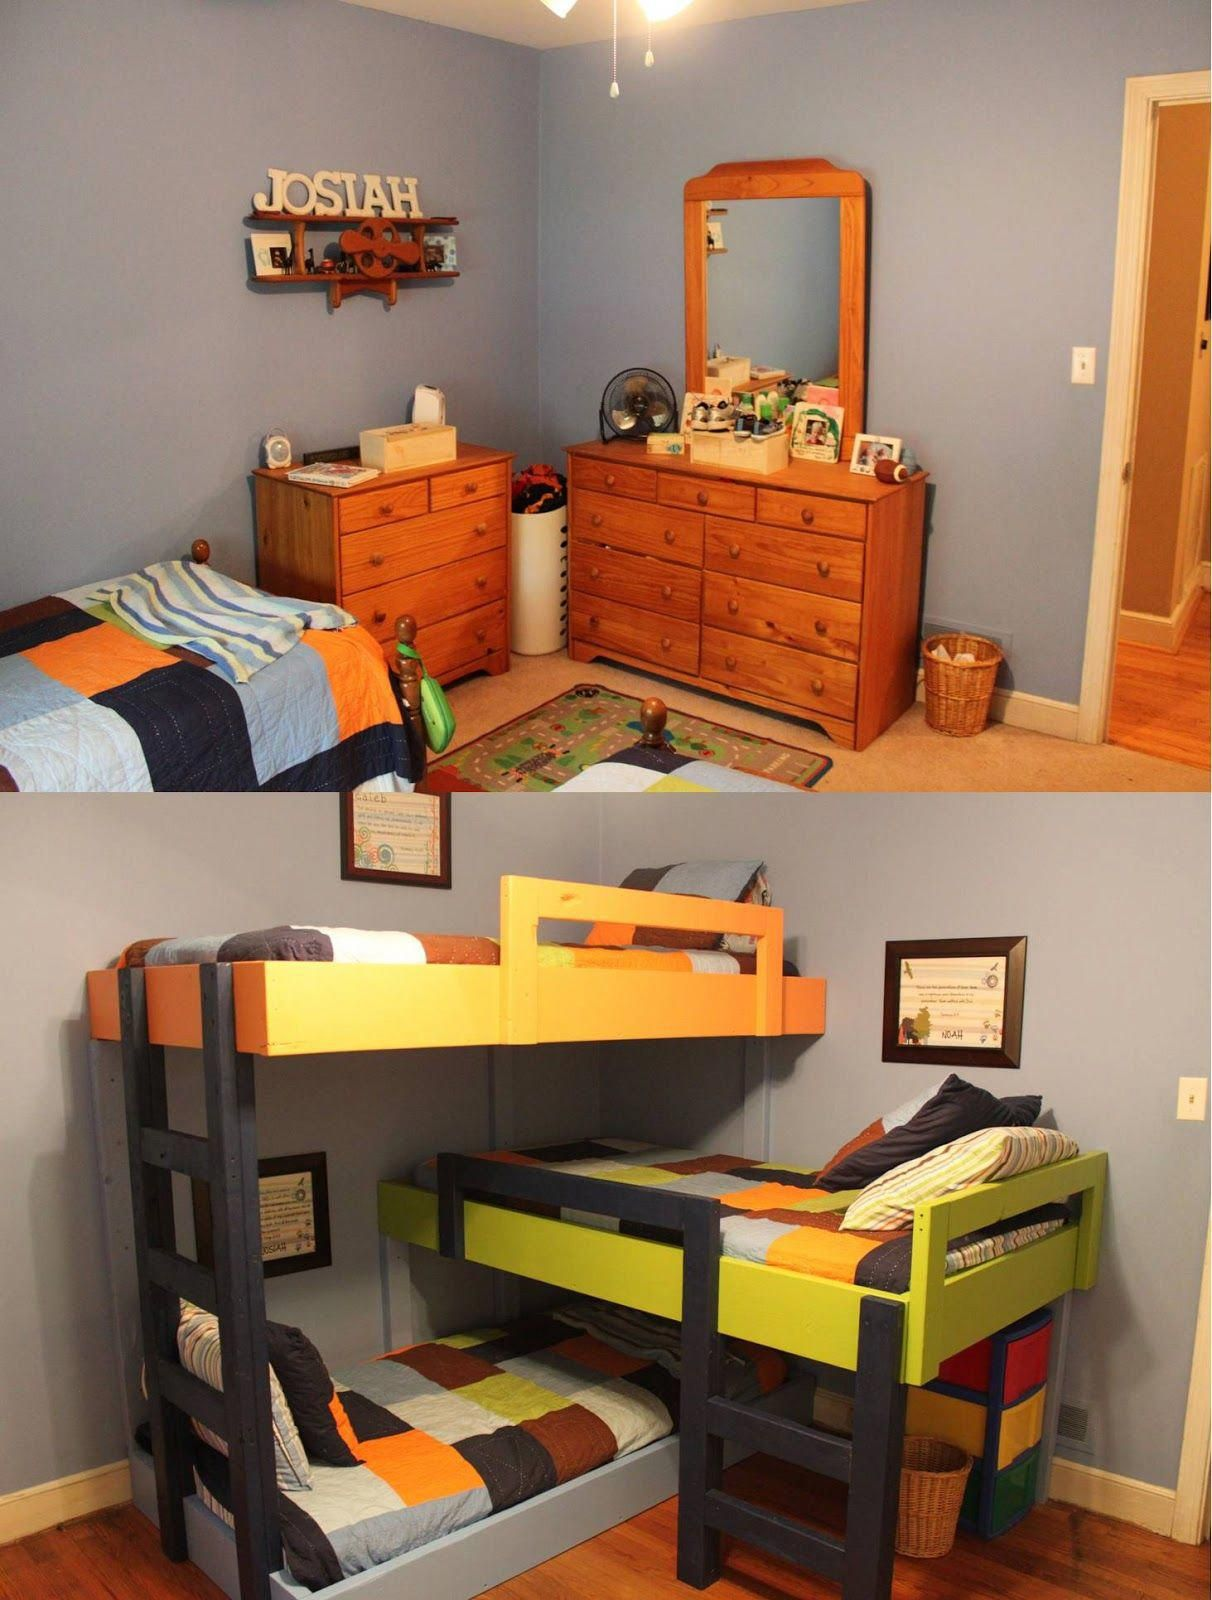 5 wonderful ideas of triple bunk beds for your kids on wonderful ideas of bunk beds for your kids bedroom id=82645